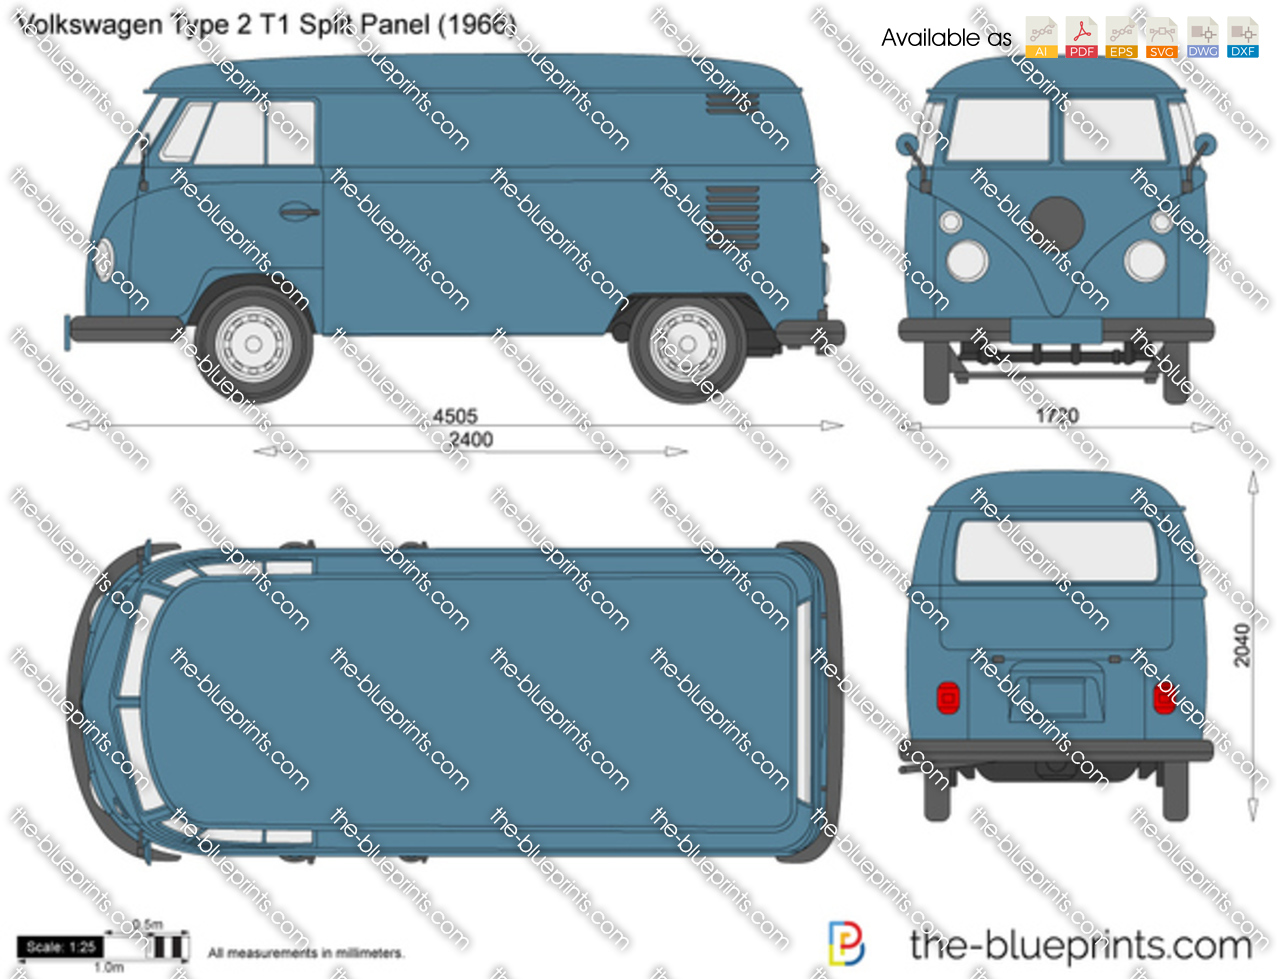 Volkswagen Type 2 T1 Split Panel 1963